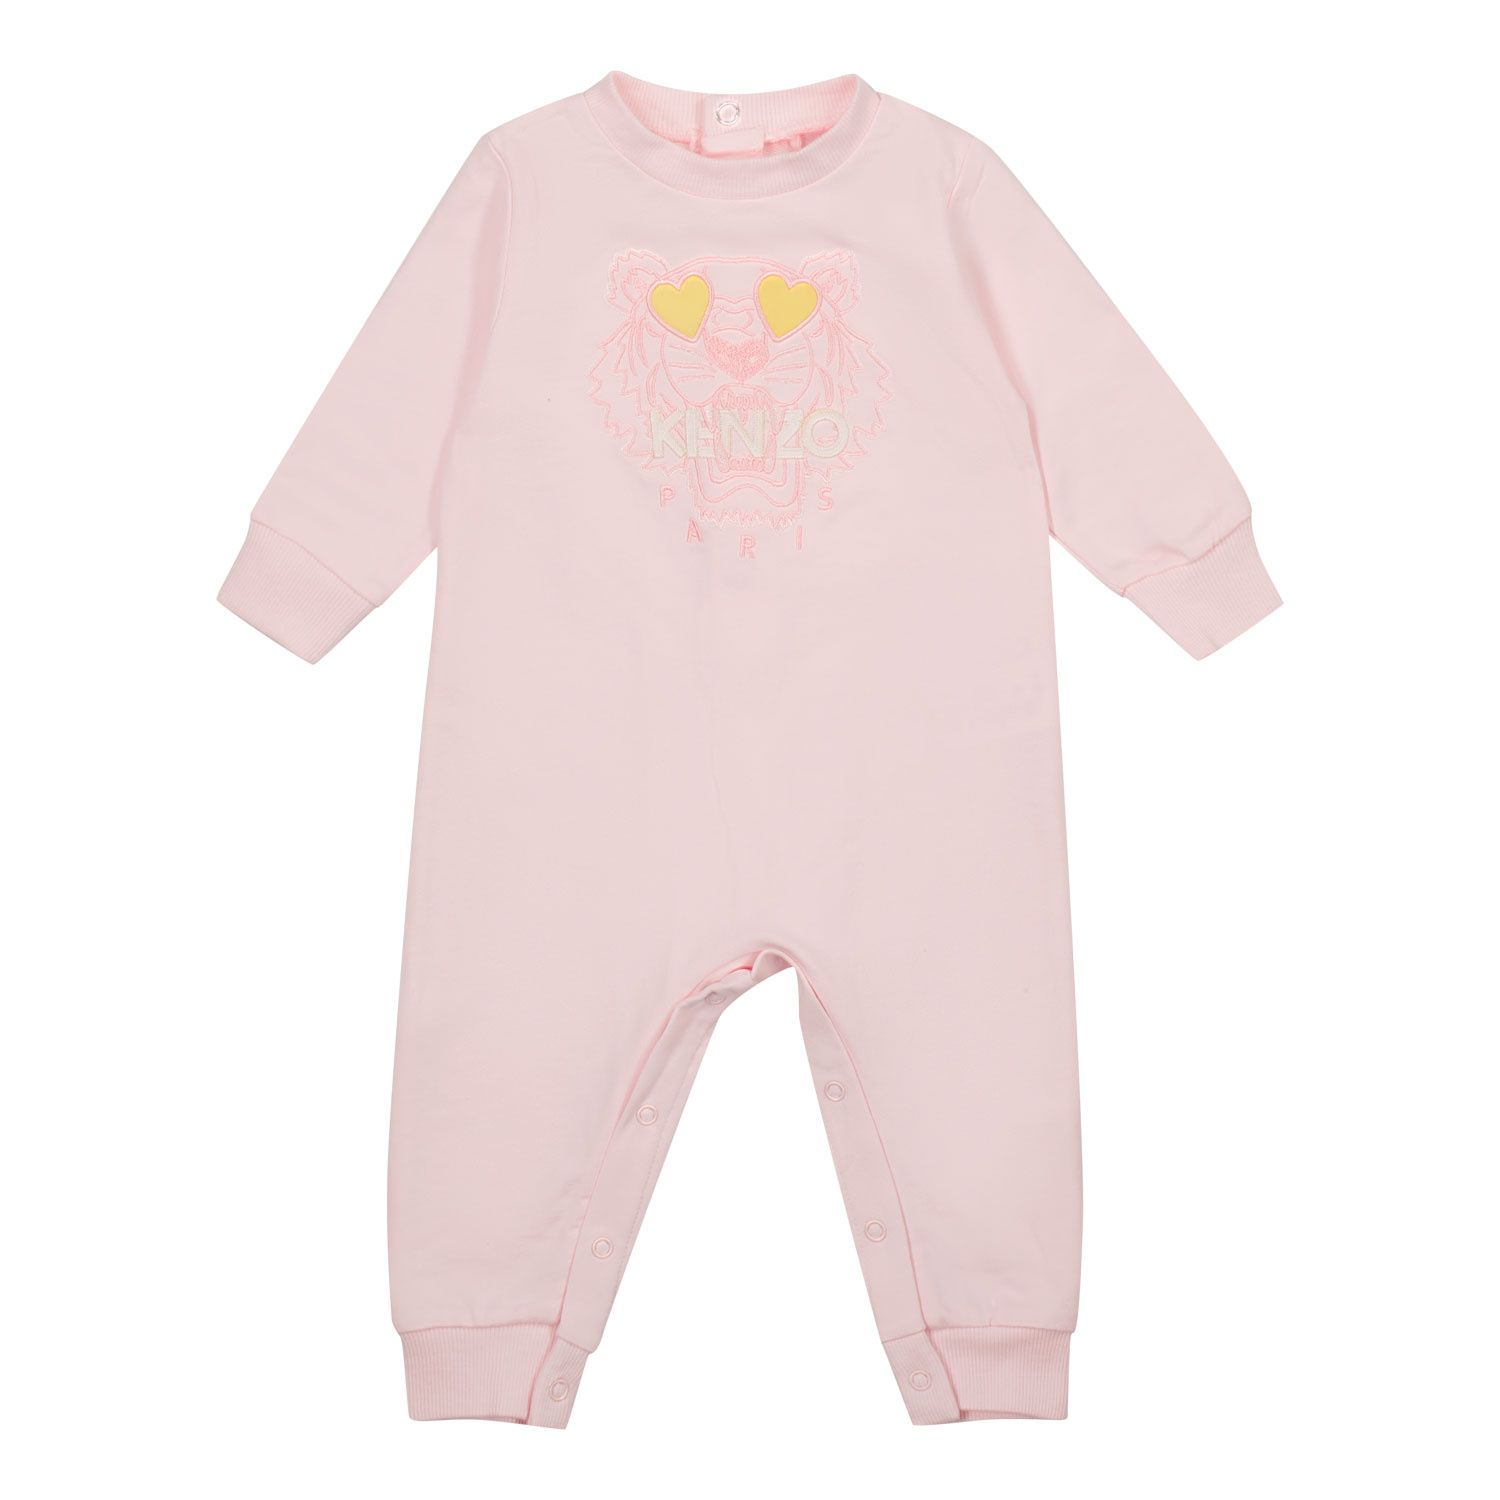 Picture of Kenzo K94011 baby playsuit light pink